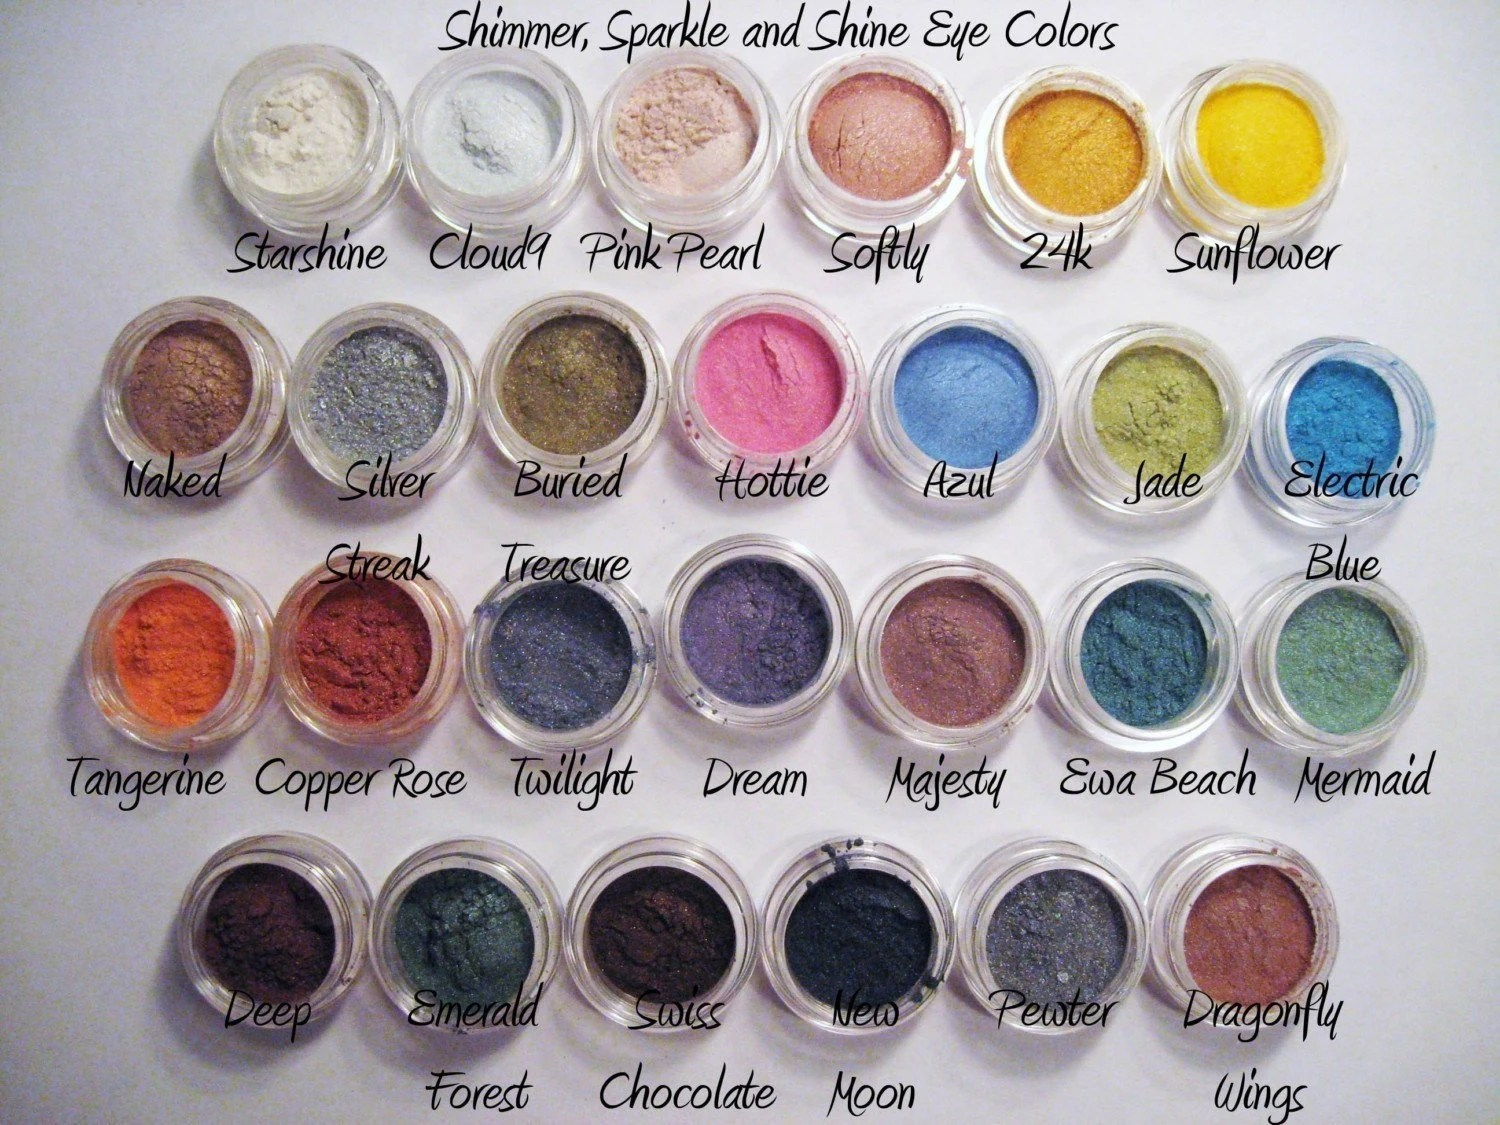 Try ANY 10 Samples of Mineral Makeup - Eyeshadow, 3-in-1, Foundation, Veil, Blush - You Choose - Free Shipping